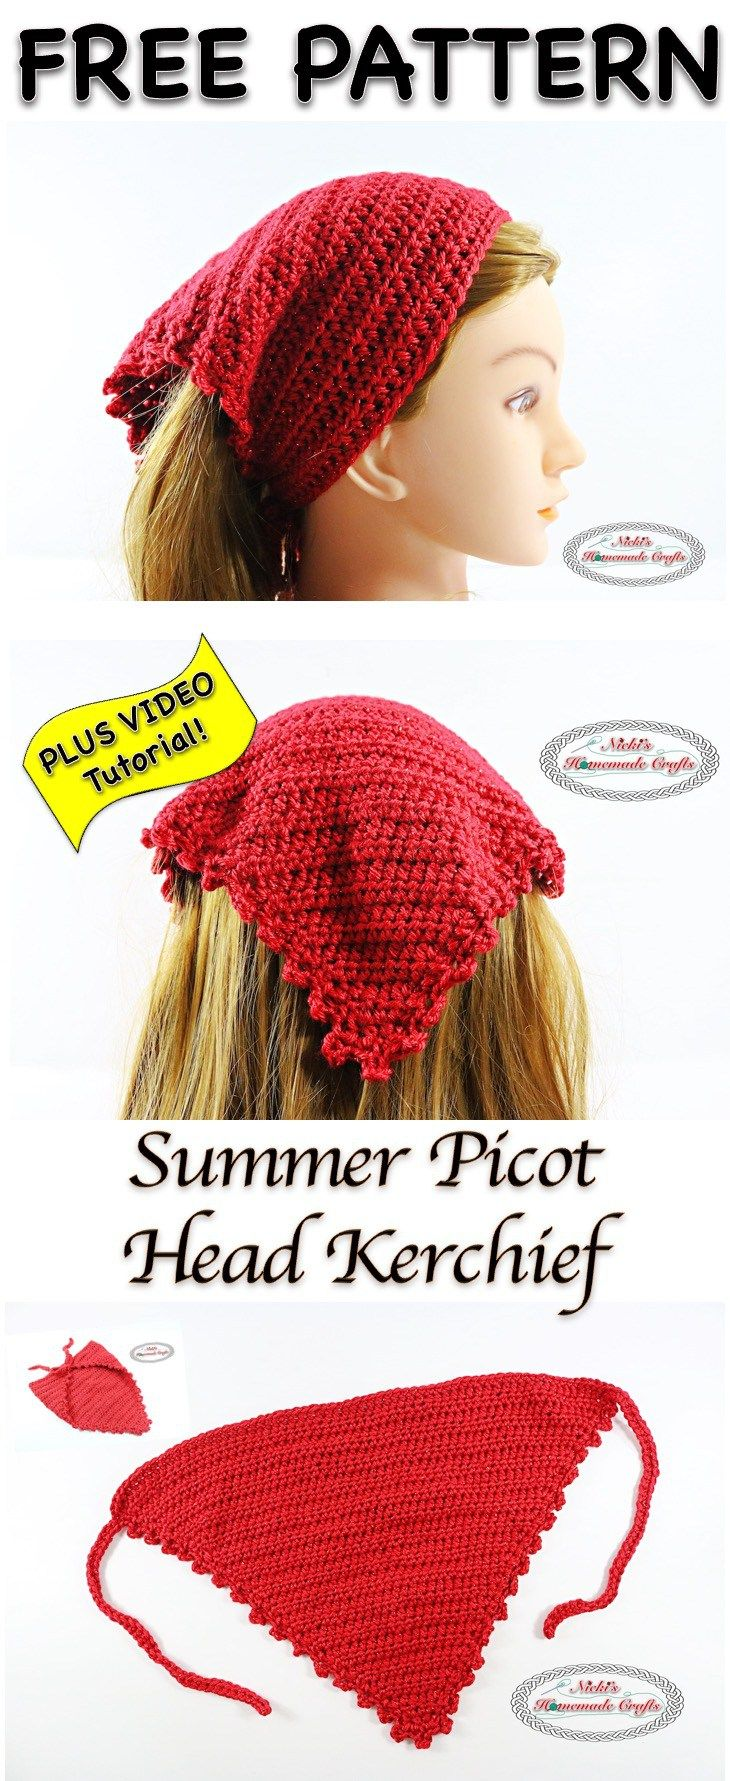 Summer Picot Head Kerchief - Free Crochet Pattern and video at Nicki's Homemade Crafts.